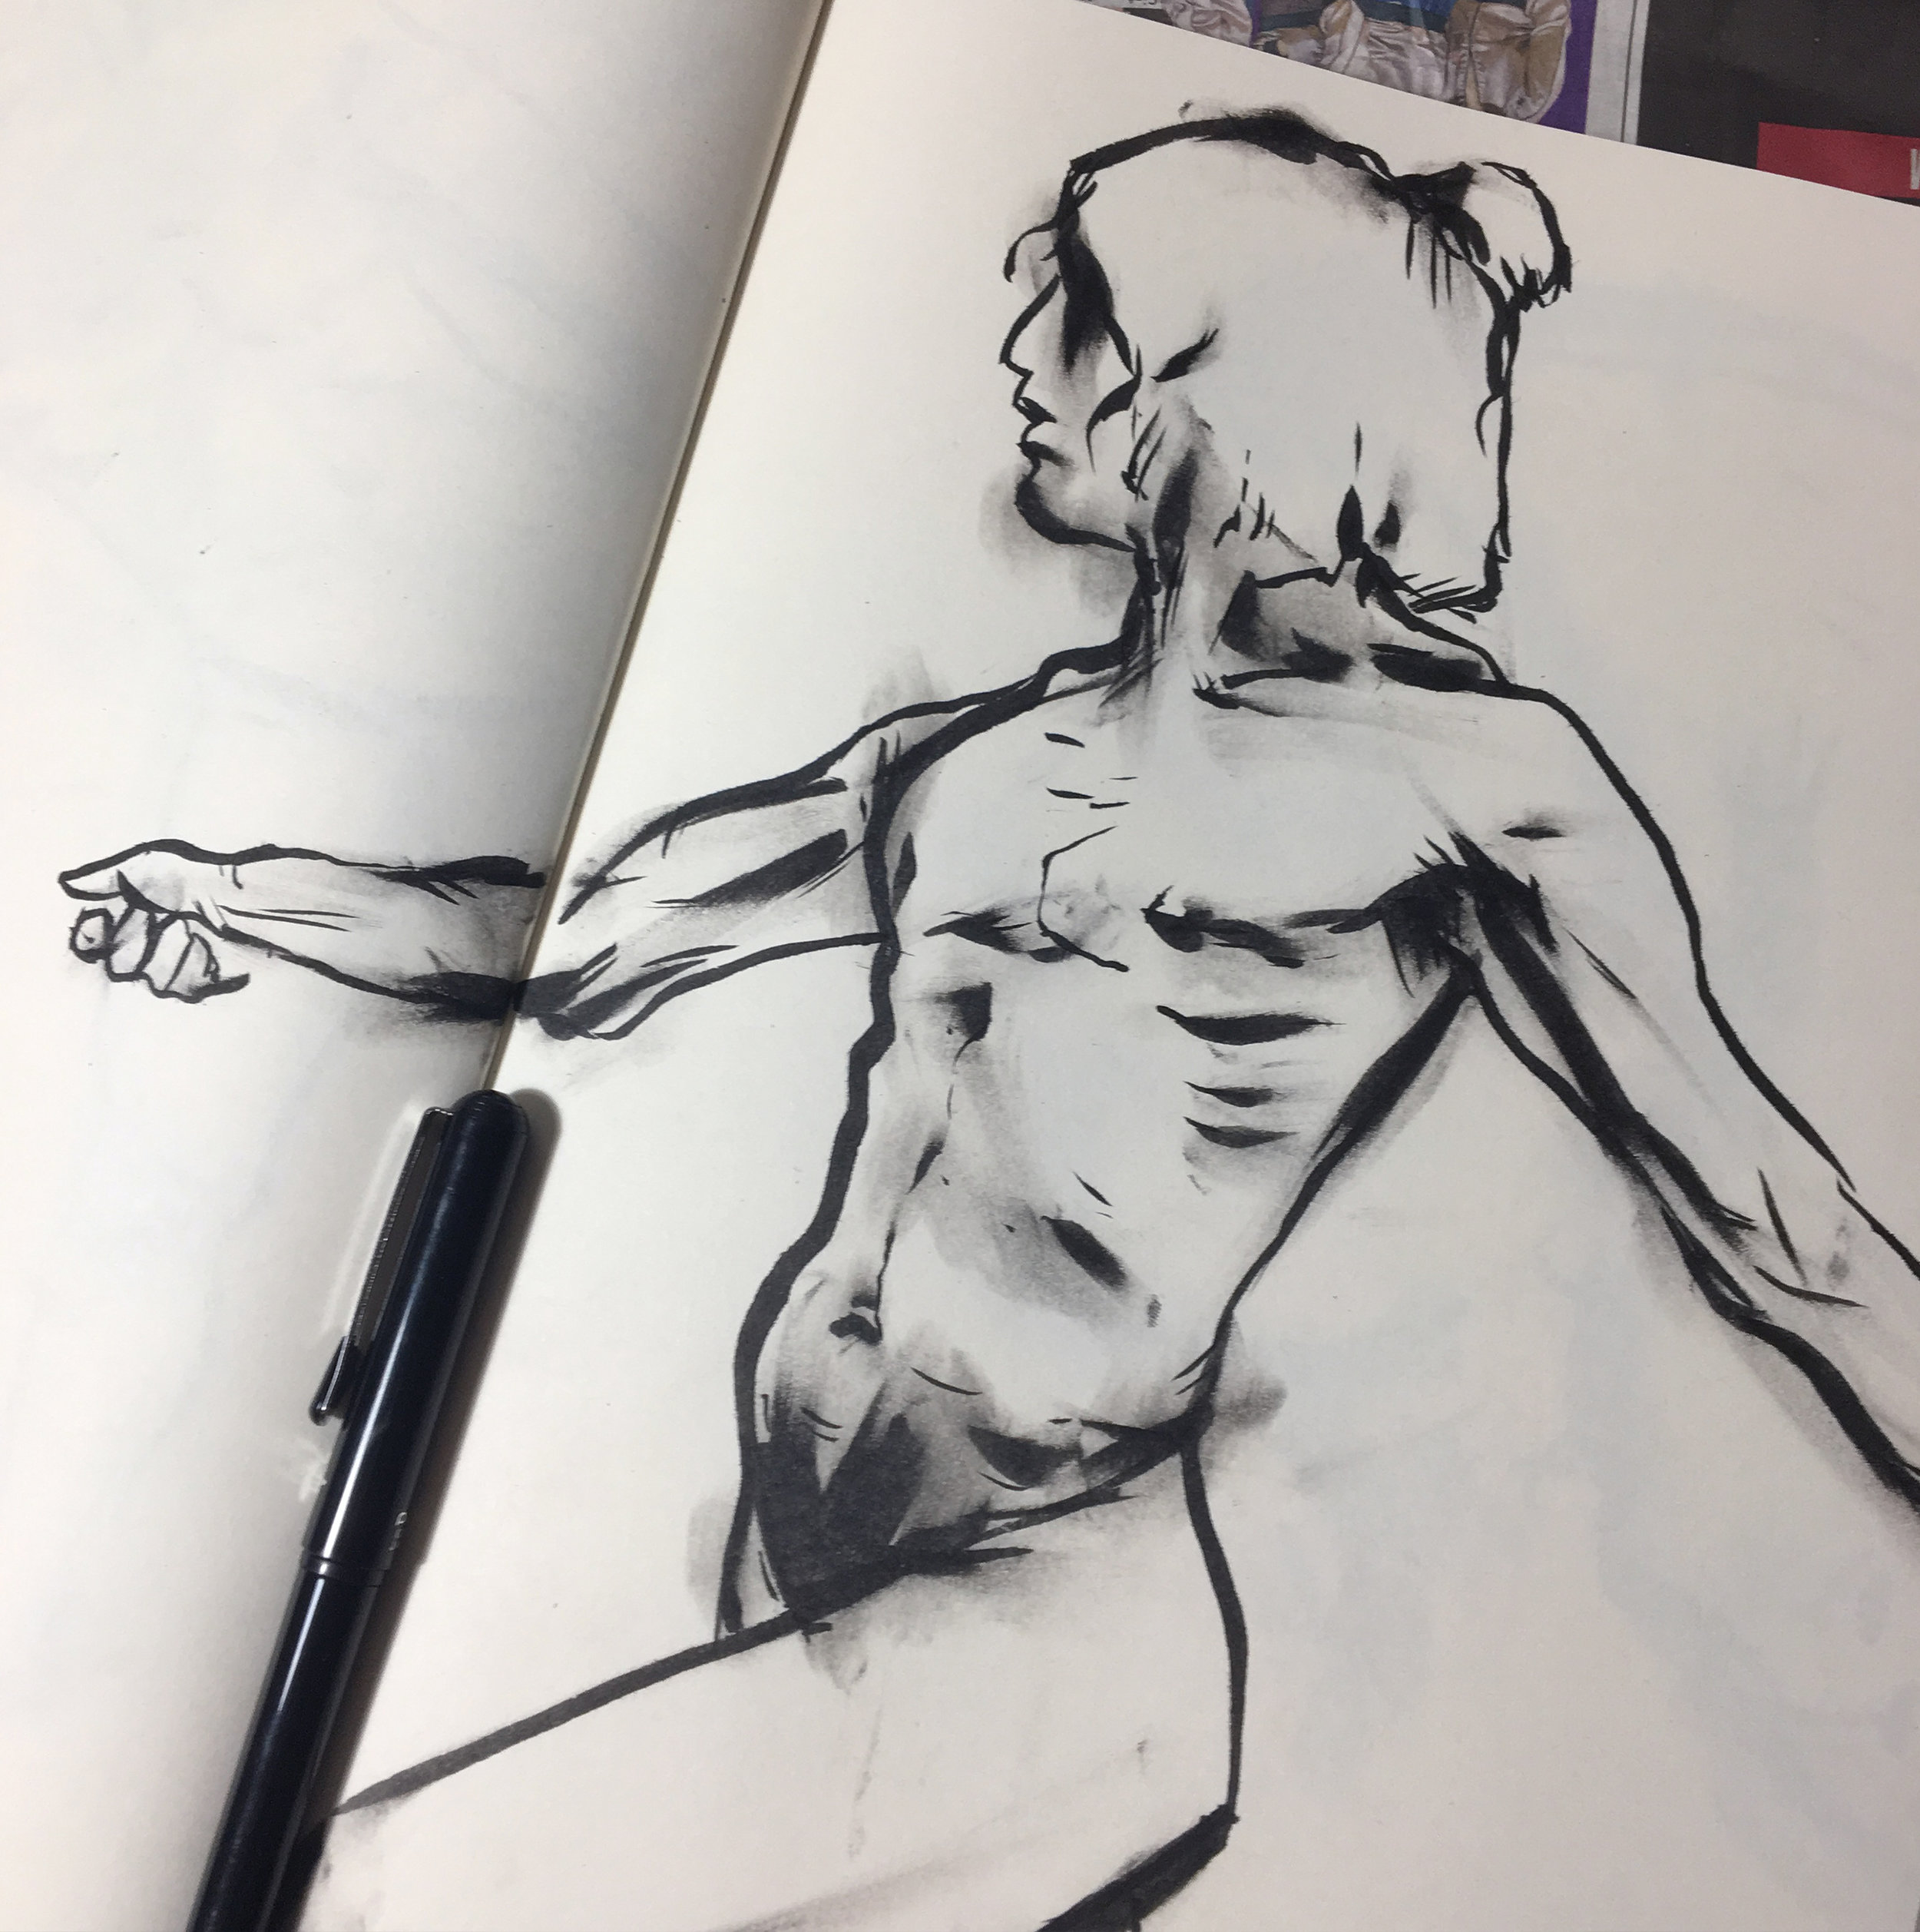 life drawing session using a brush pen (2018)